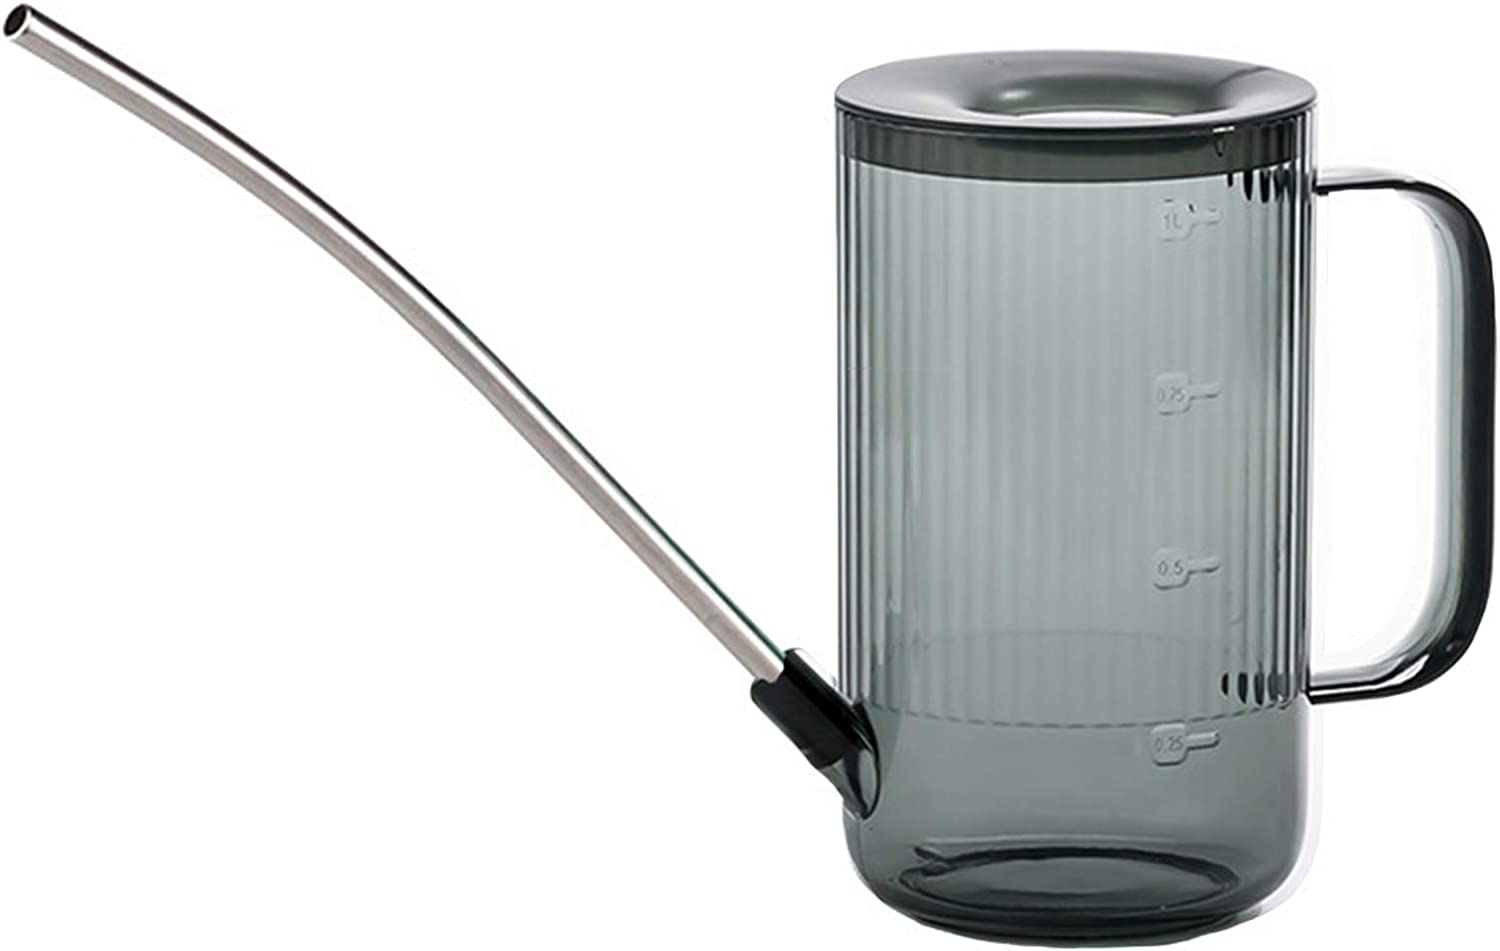 Long Spout Watering Can Indoor, Small Watering Cans for House Plants, Flowers, Succulents (Grey)